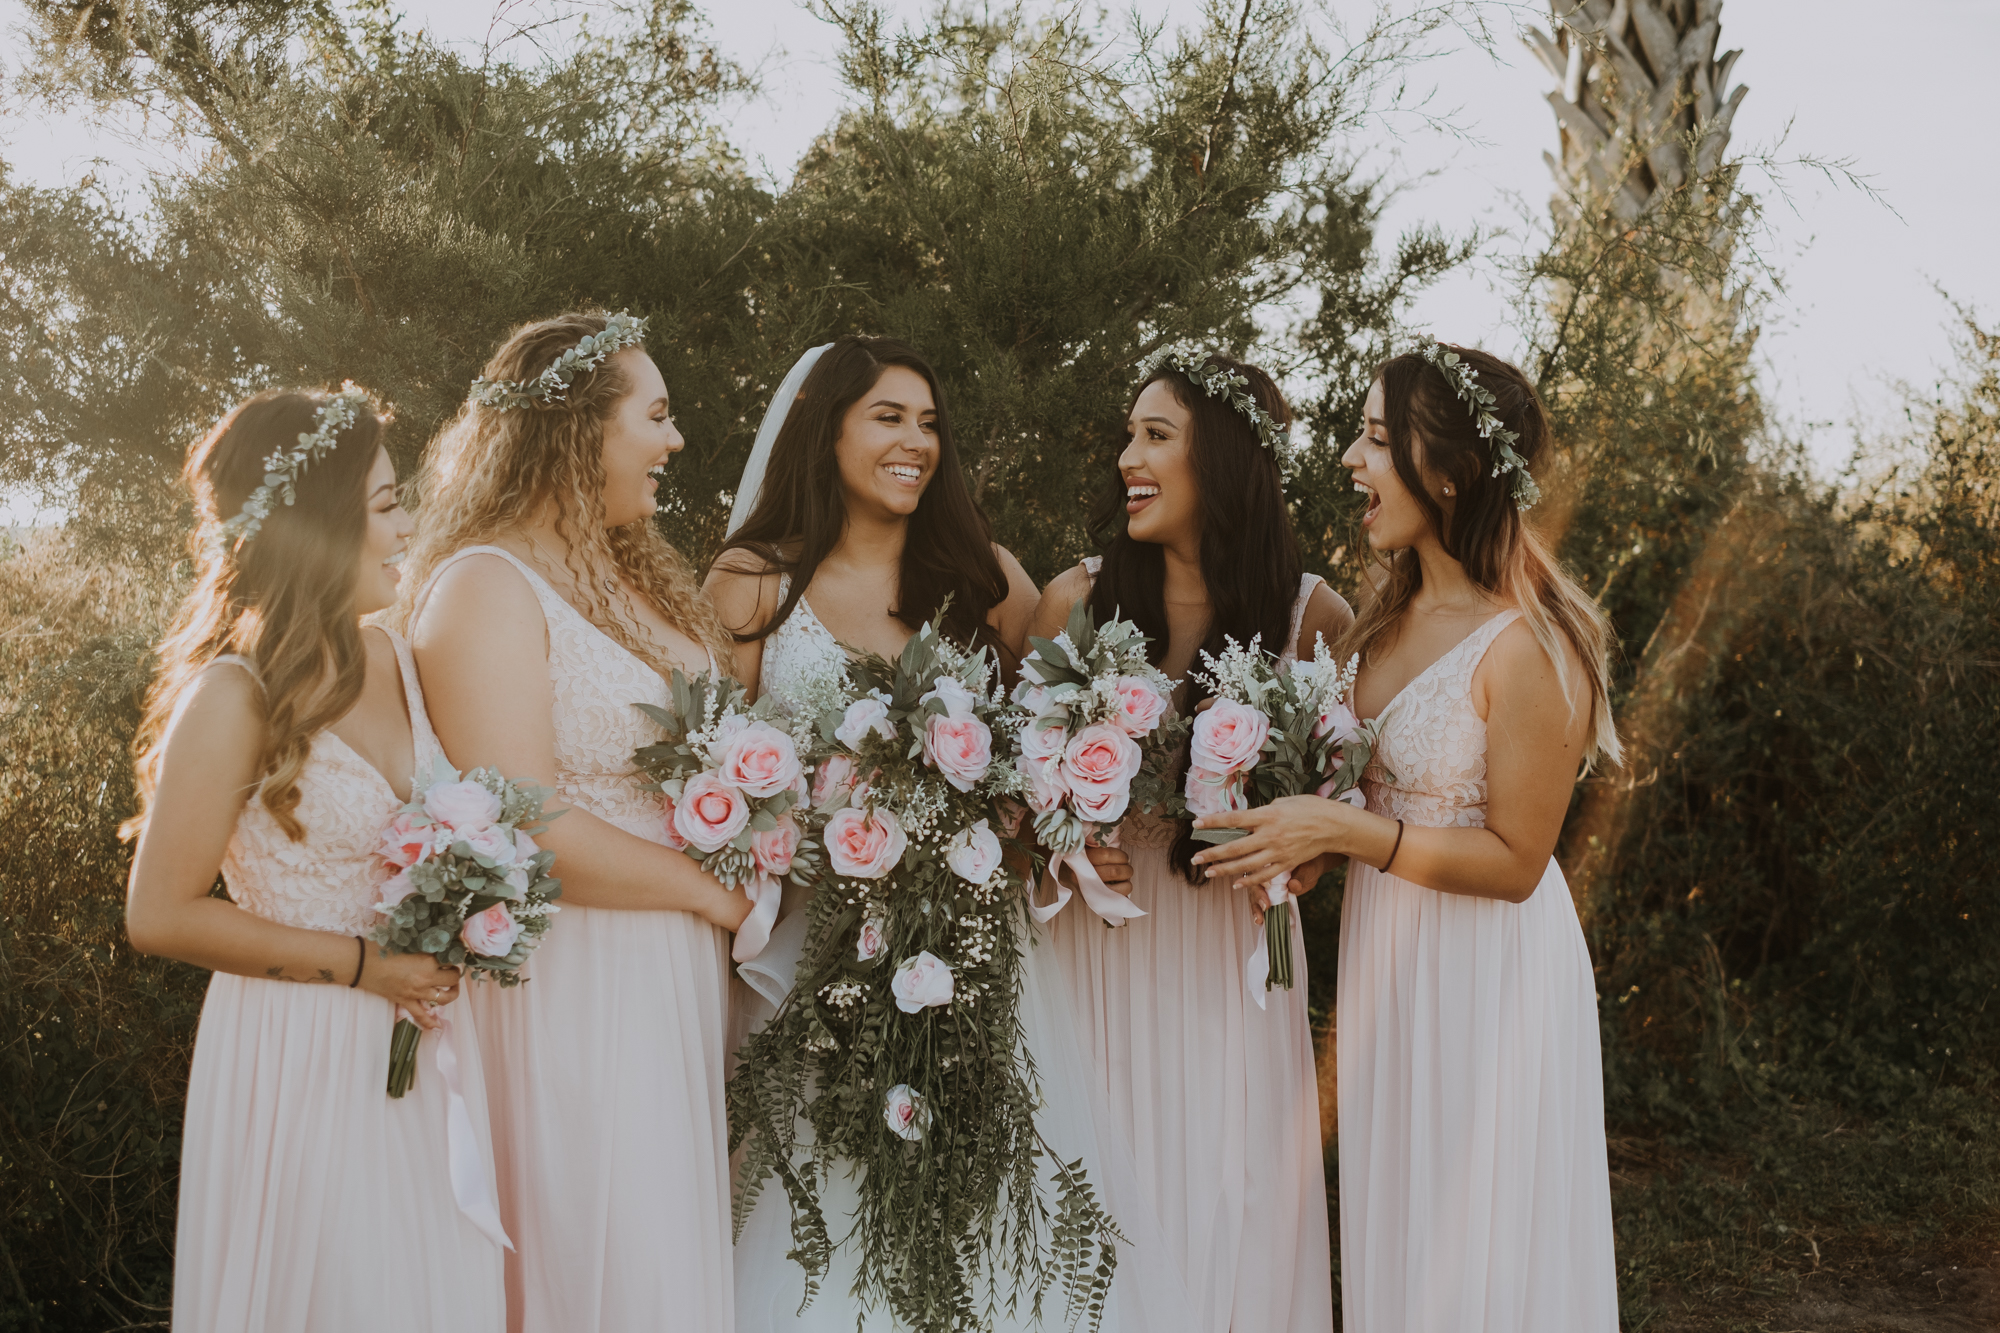 boho bridal party | bridal party portraits | bridesmaid portraits | outdoor Florida wedding | sarasota wedding